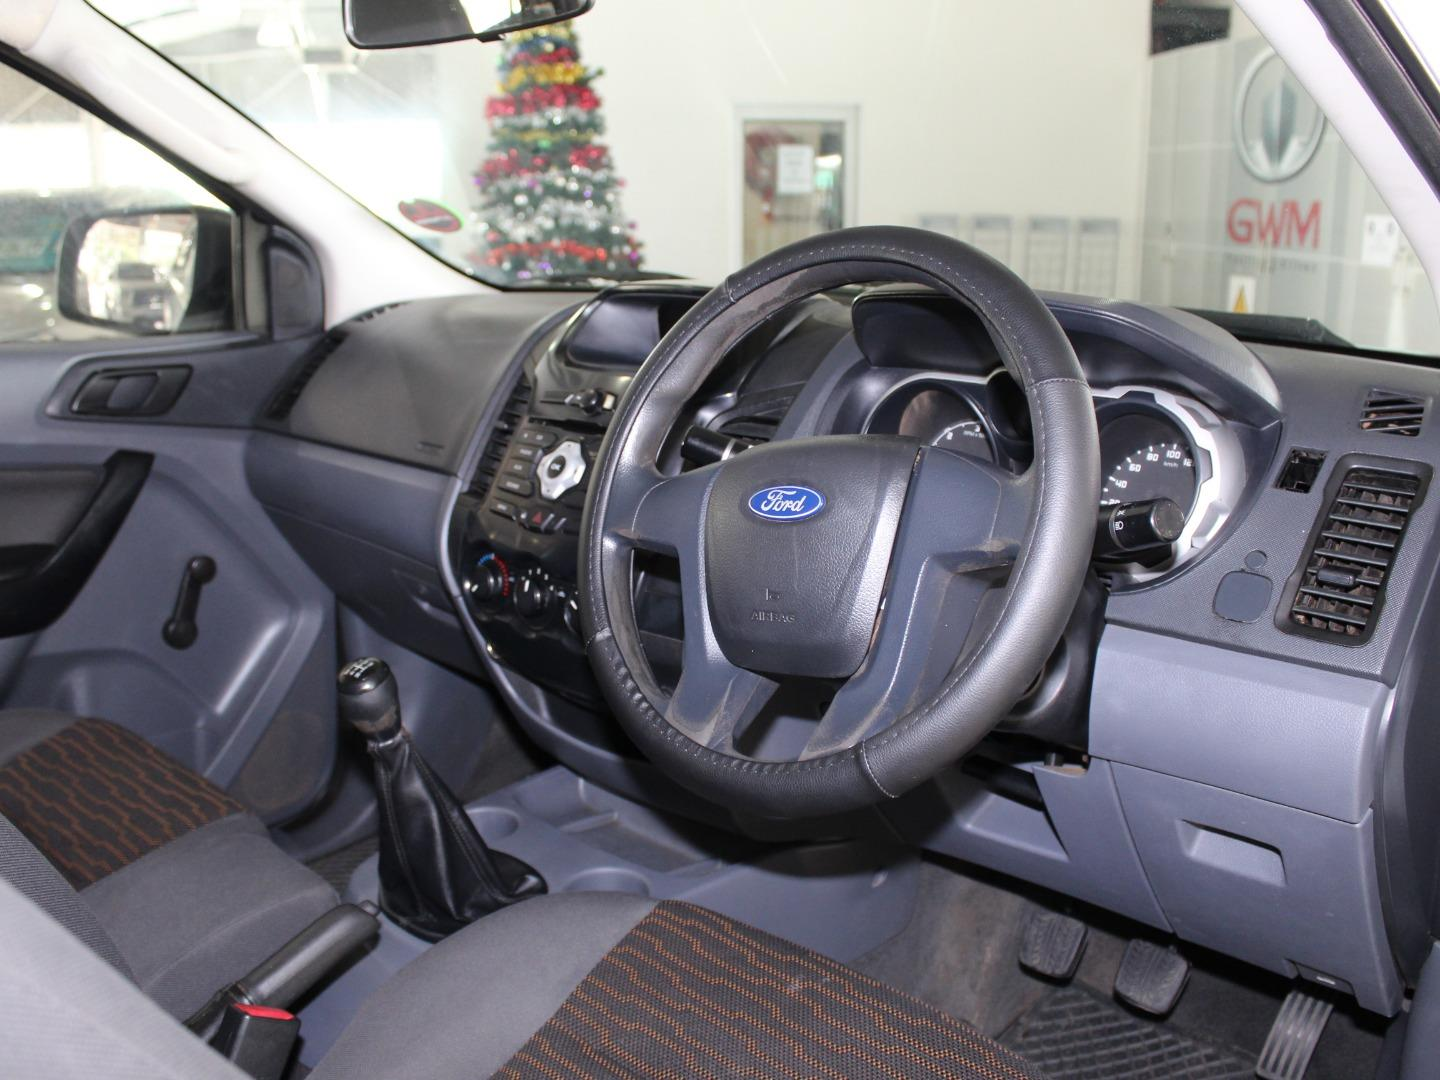 2013 Ford Ranger 2.2TDCi 4x4 XL- Picture 6